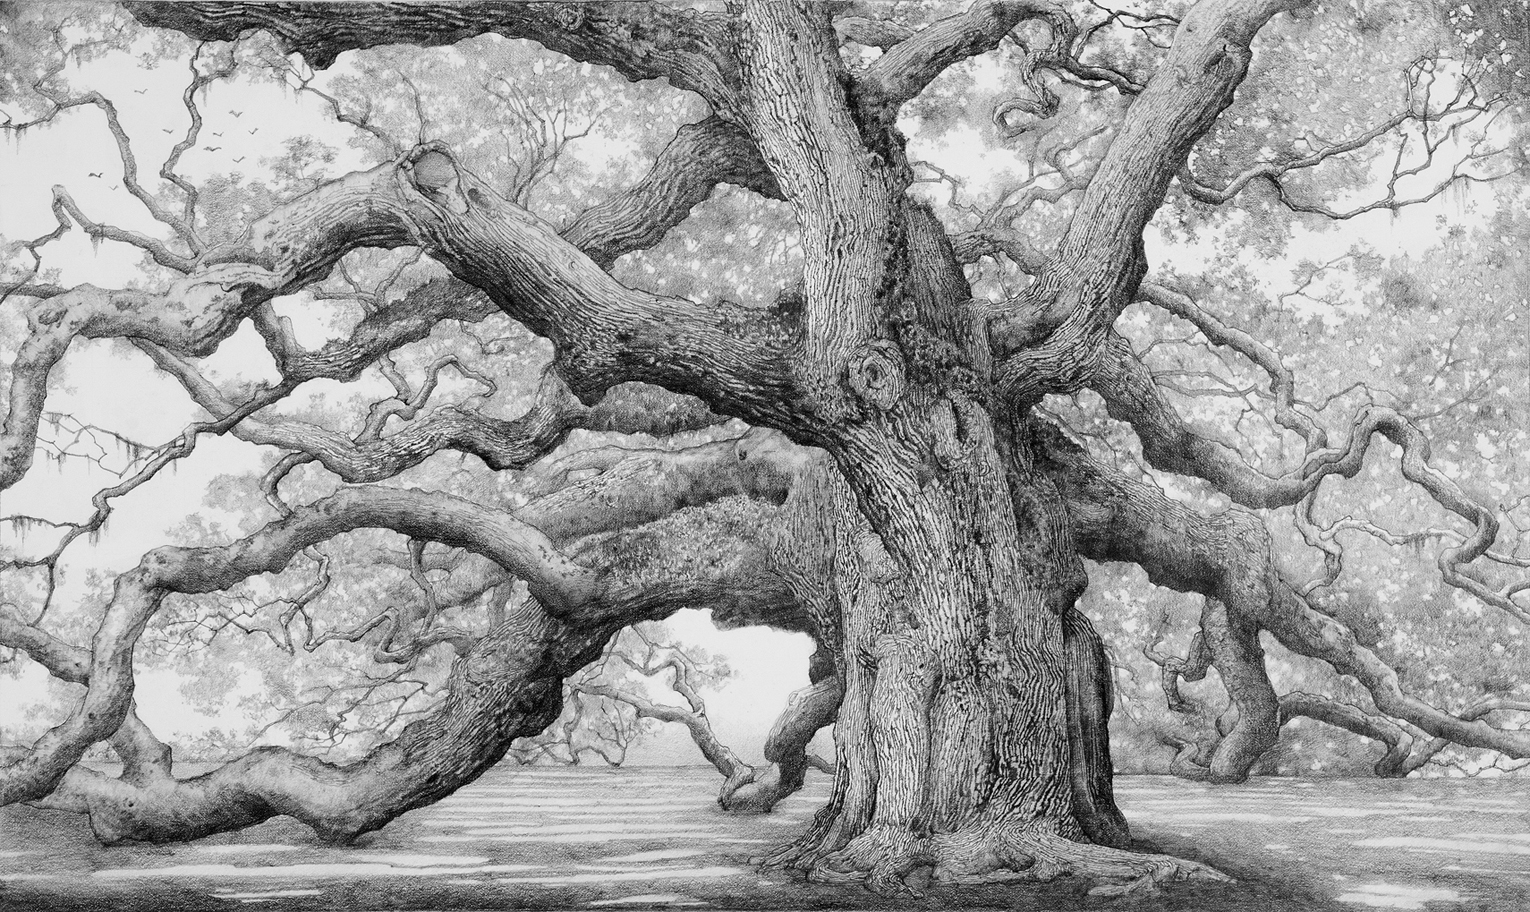 Charles Brindley, The Angel Oak / Graphite on paper / 16×26 inches /2010